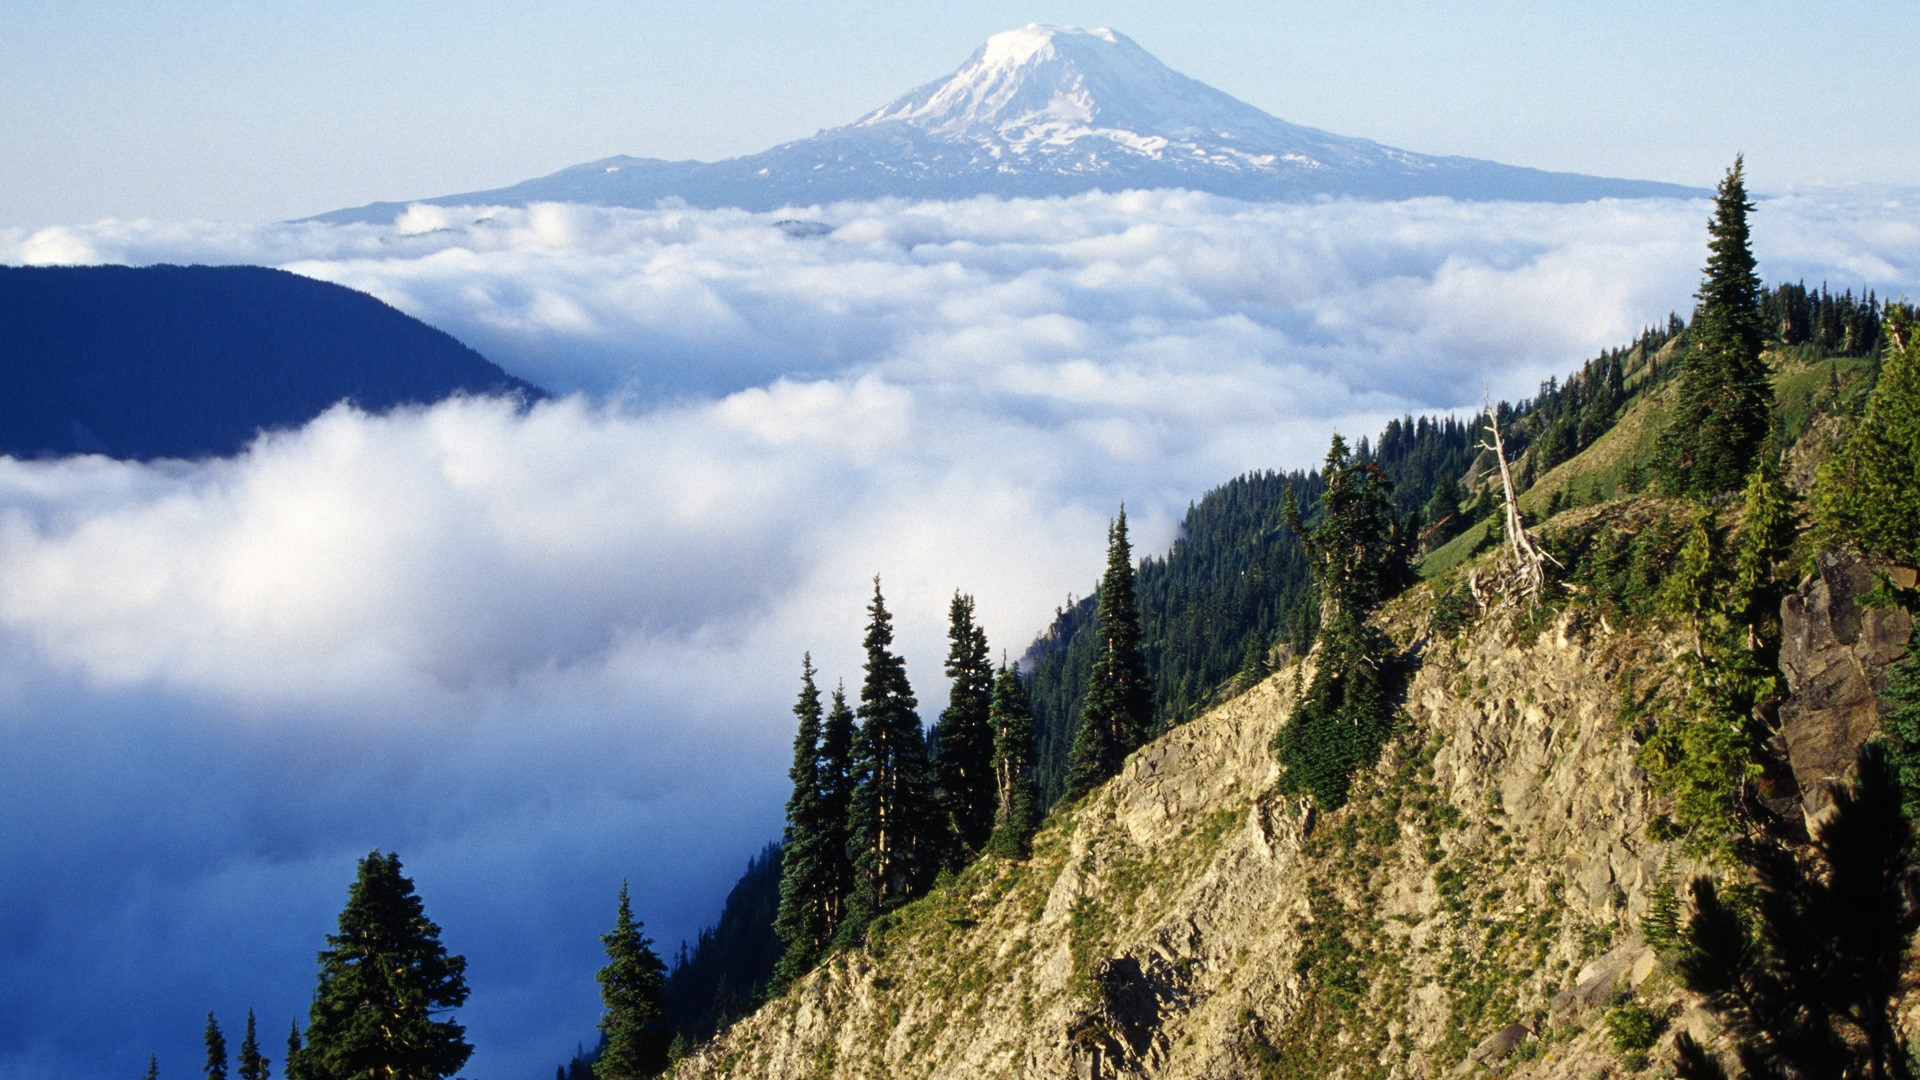 General 1920x1080 nature landscape mountains trees forest far view clouds snowy peak sky Mount Adams Washington USA